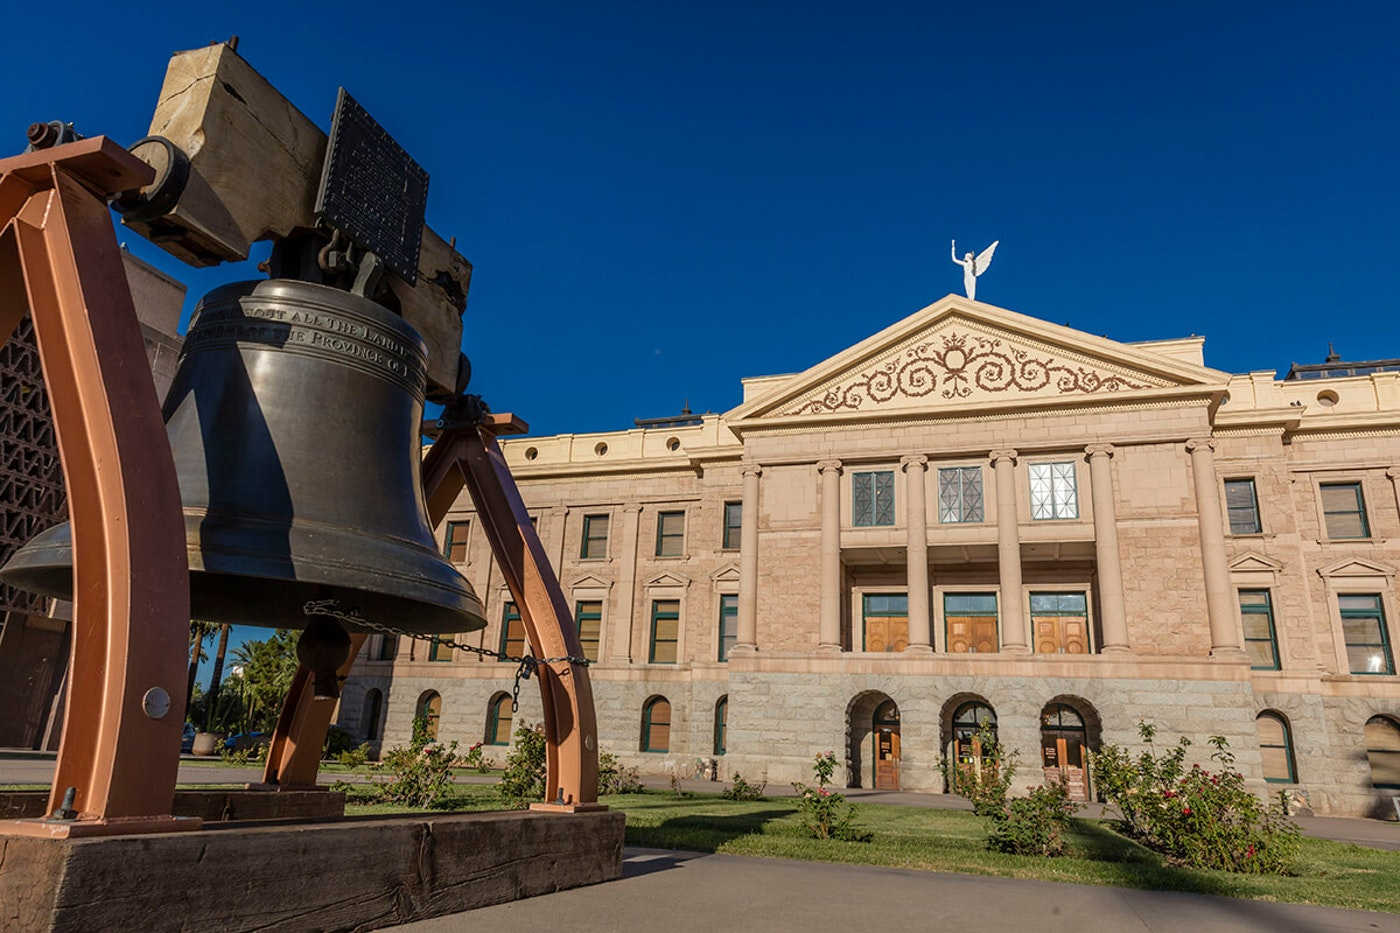 phoenix replica liberty bell outside of the Arizona state Capitol building